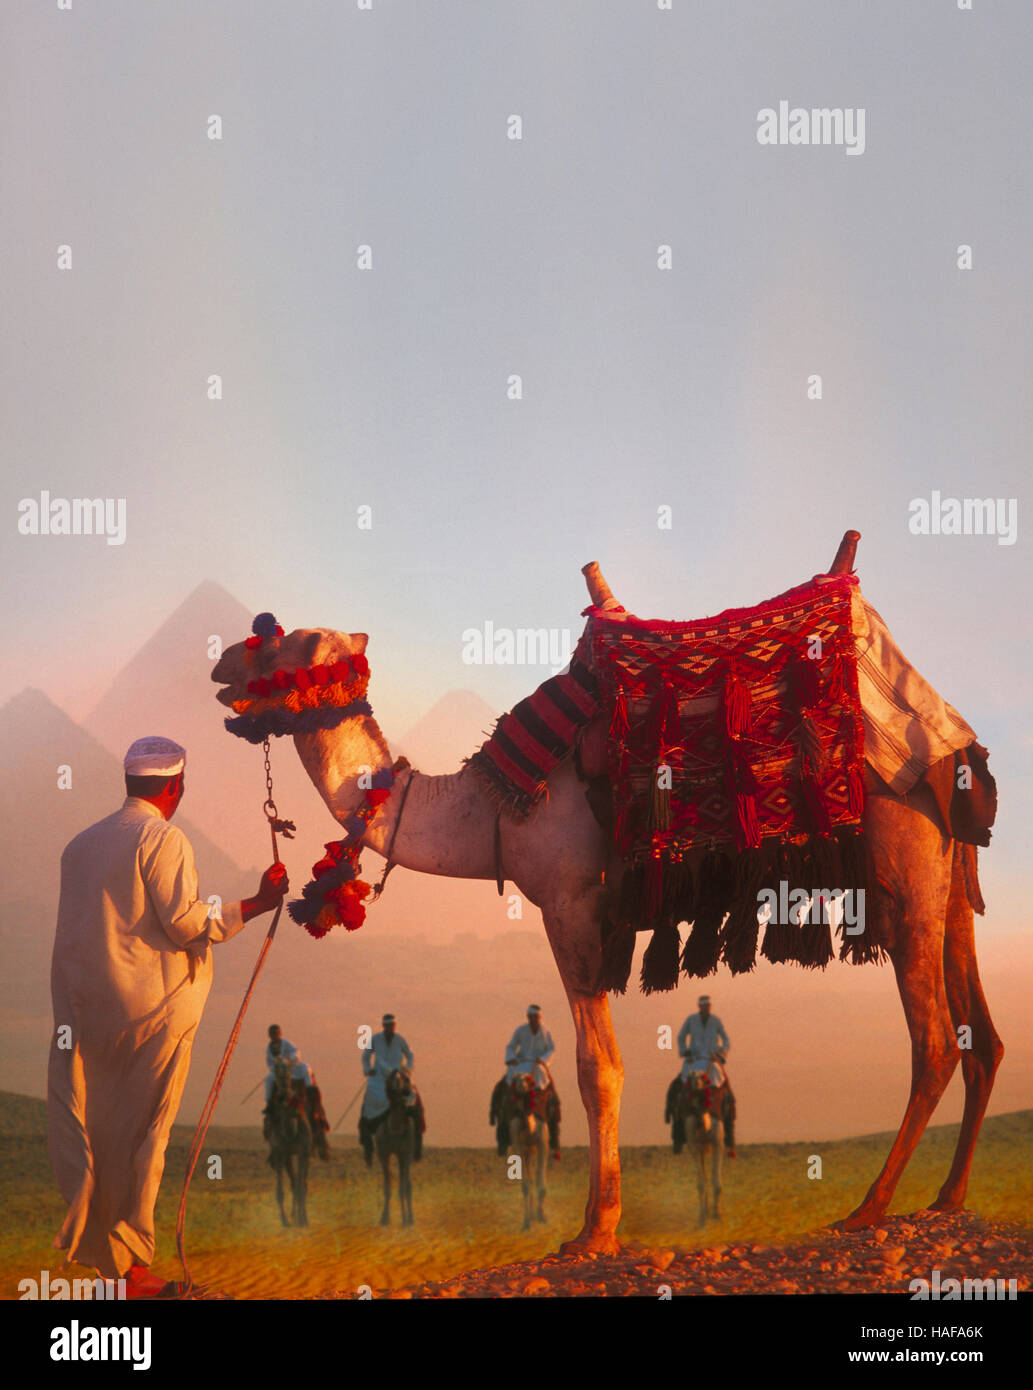 Camels and Pyramids at dawn, Giza, Cairo, Egypt - Stock Image